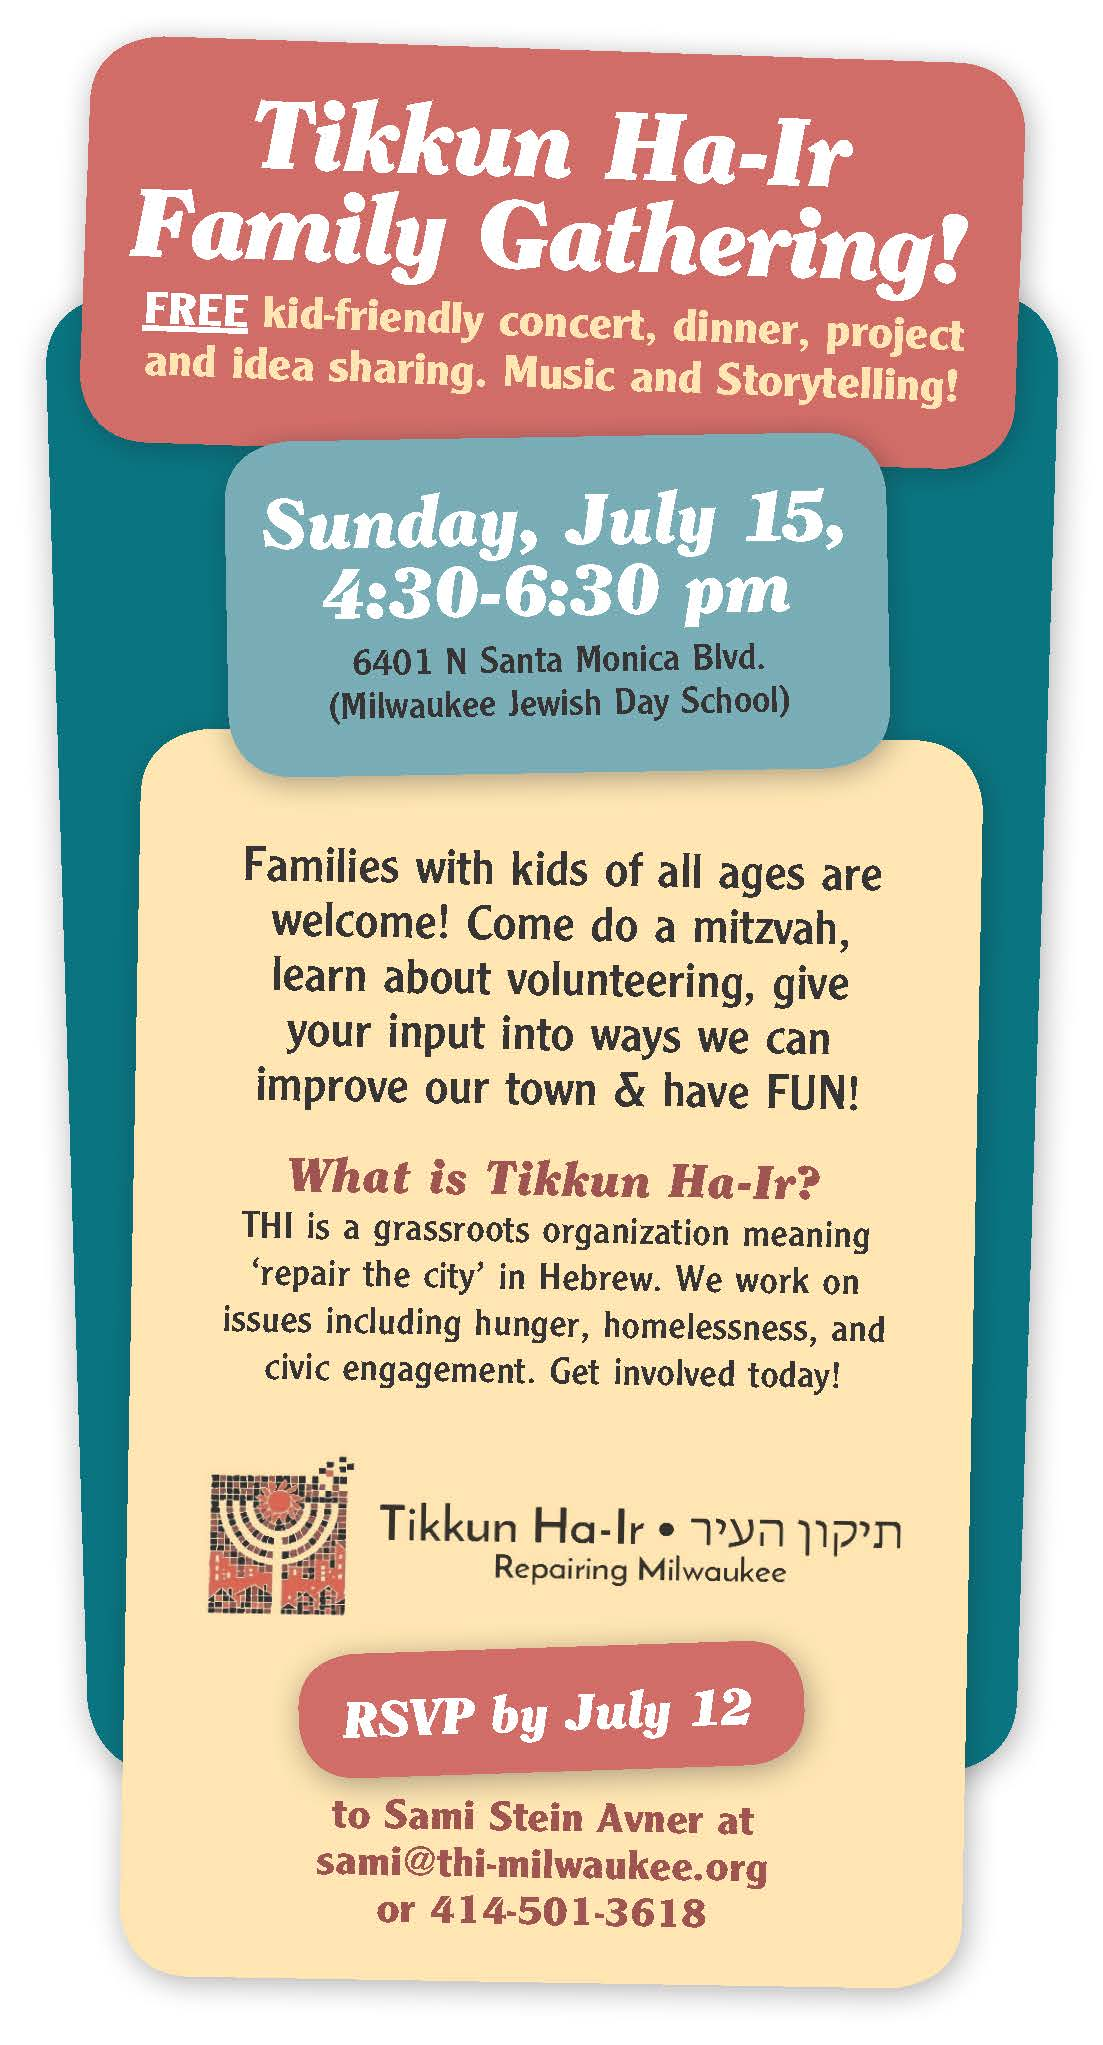 Tikkun Ha Ir_Family GatheringFINAL7-18_r4